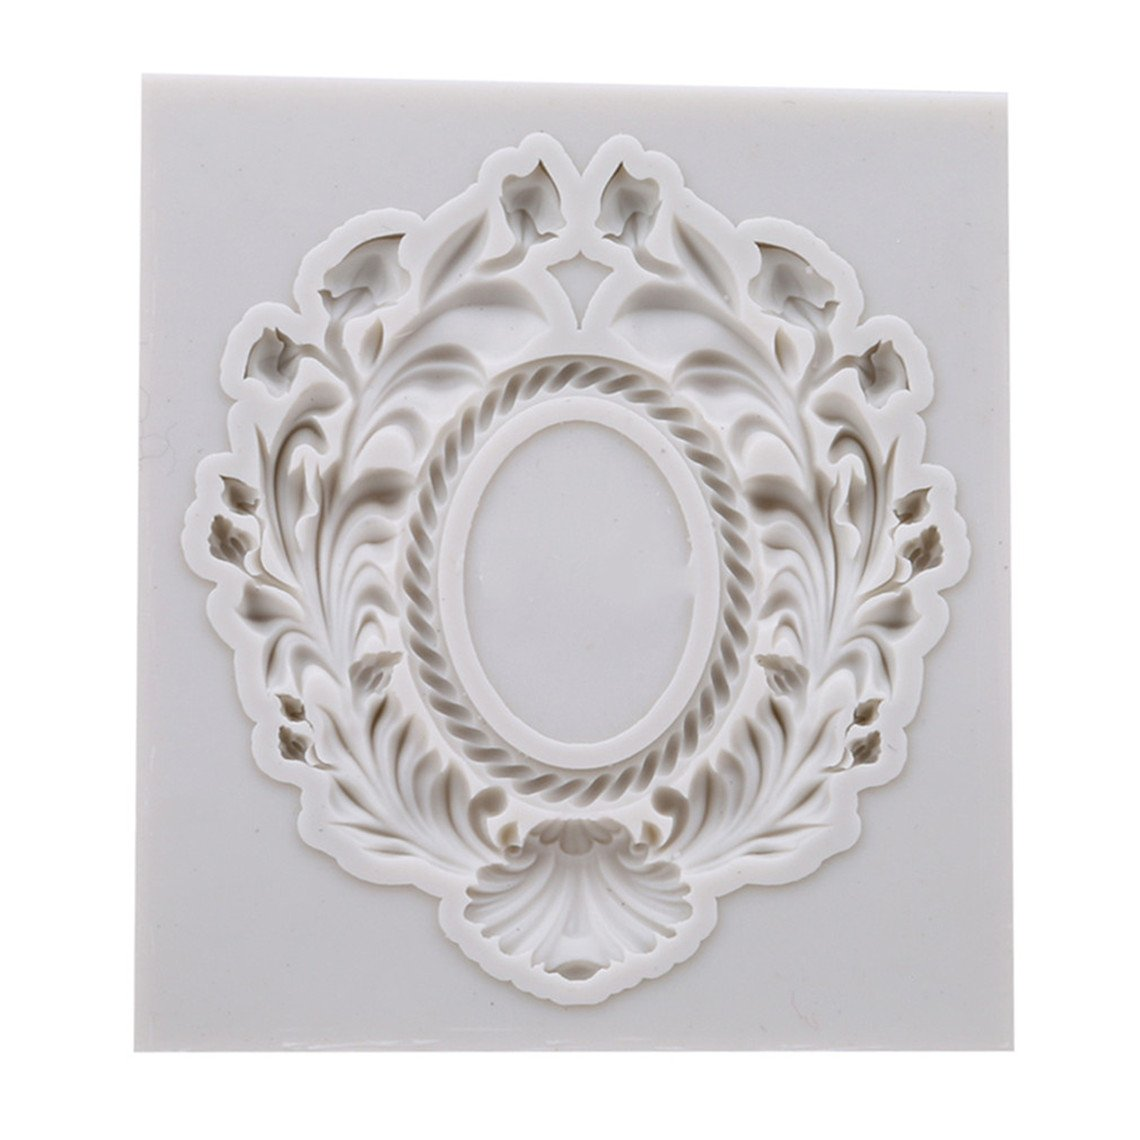 Rurah Photo Frame Fondant Mold Vintage Photo Frame Silicone Cake Mould DIY Mold Silicone Mould for Cake Decorating,3#